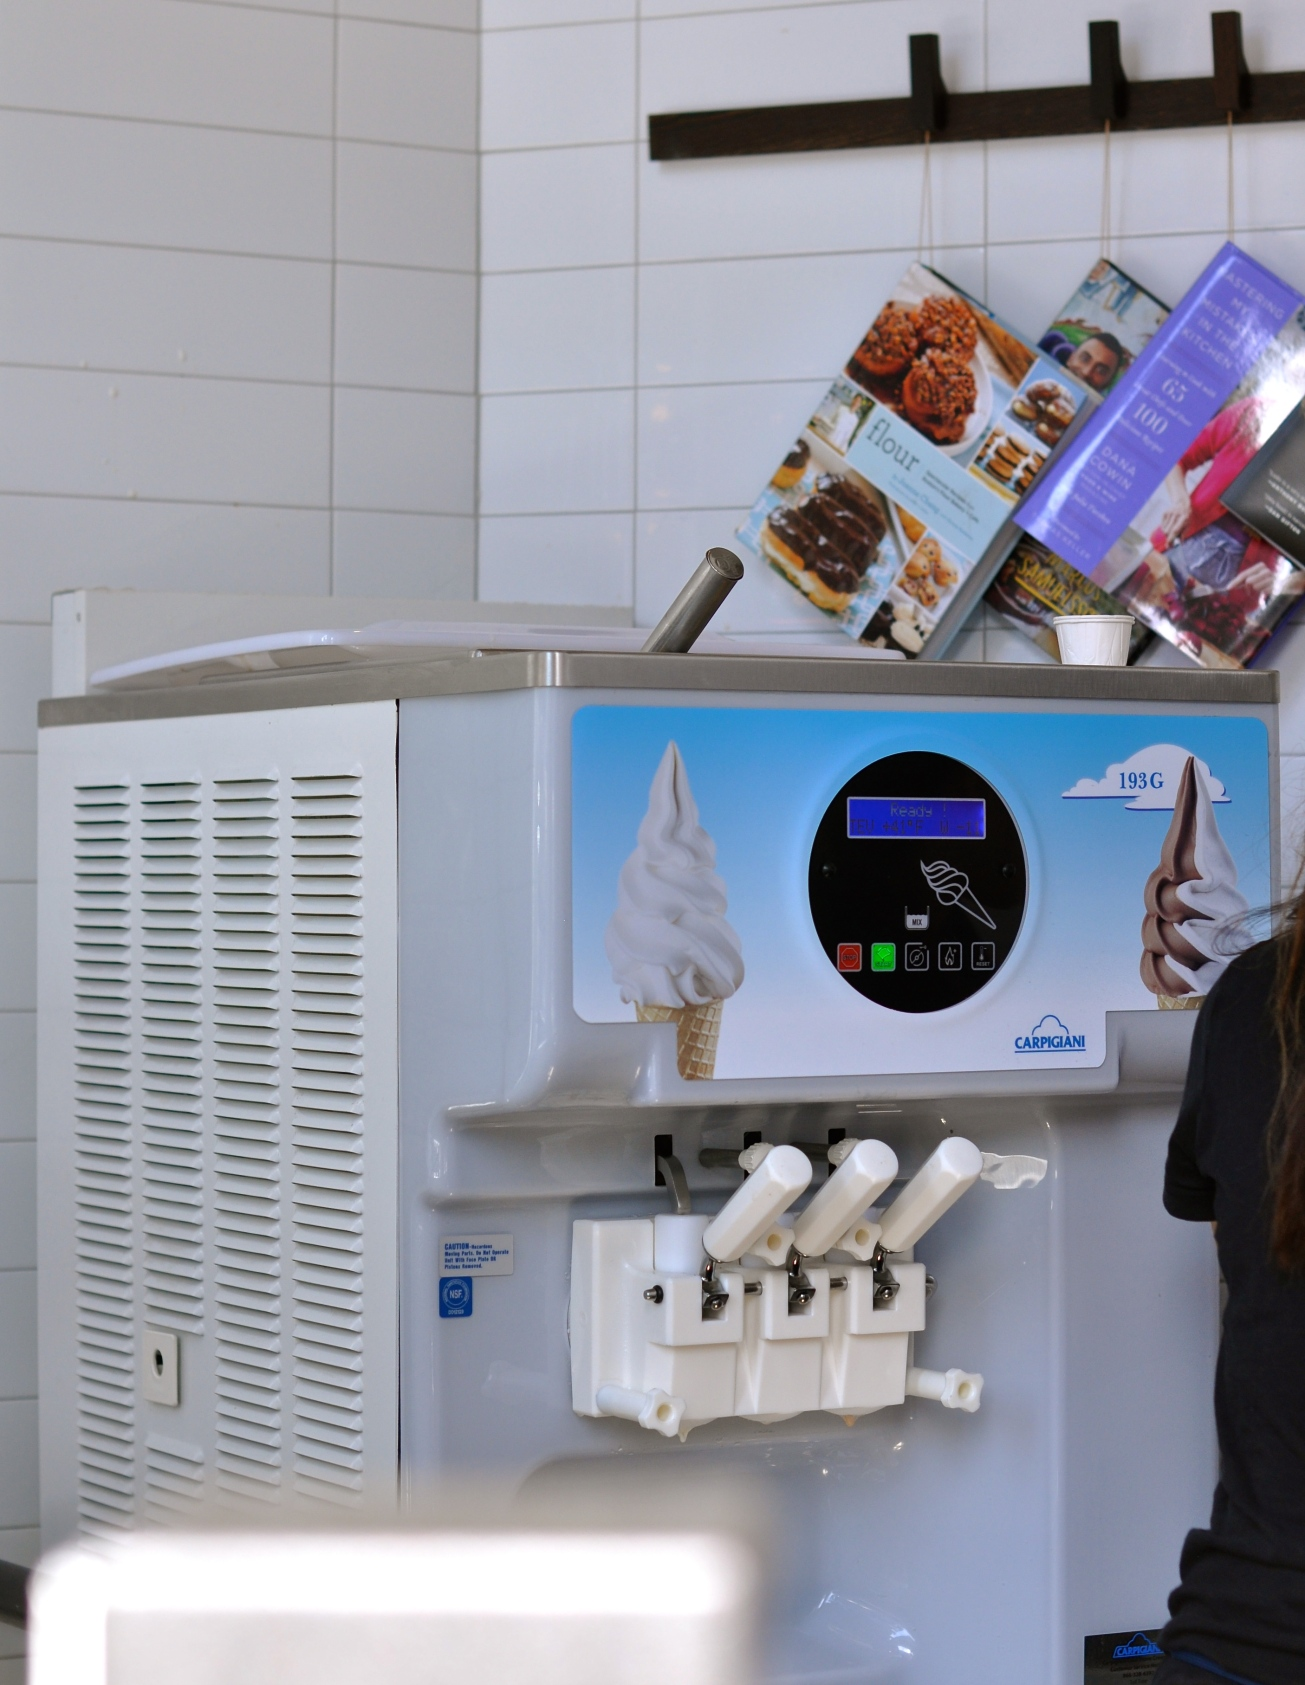 DAK soft serve machine